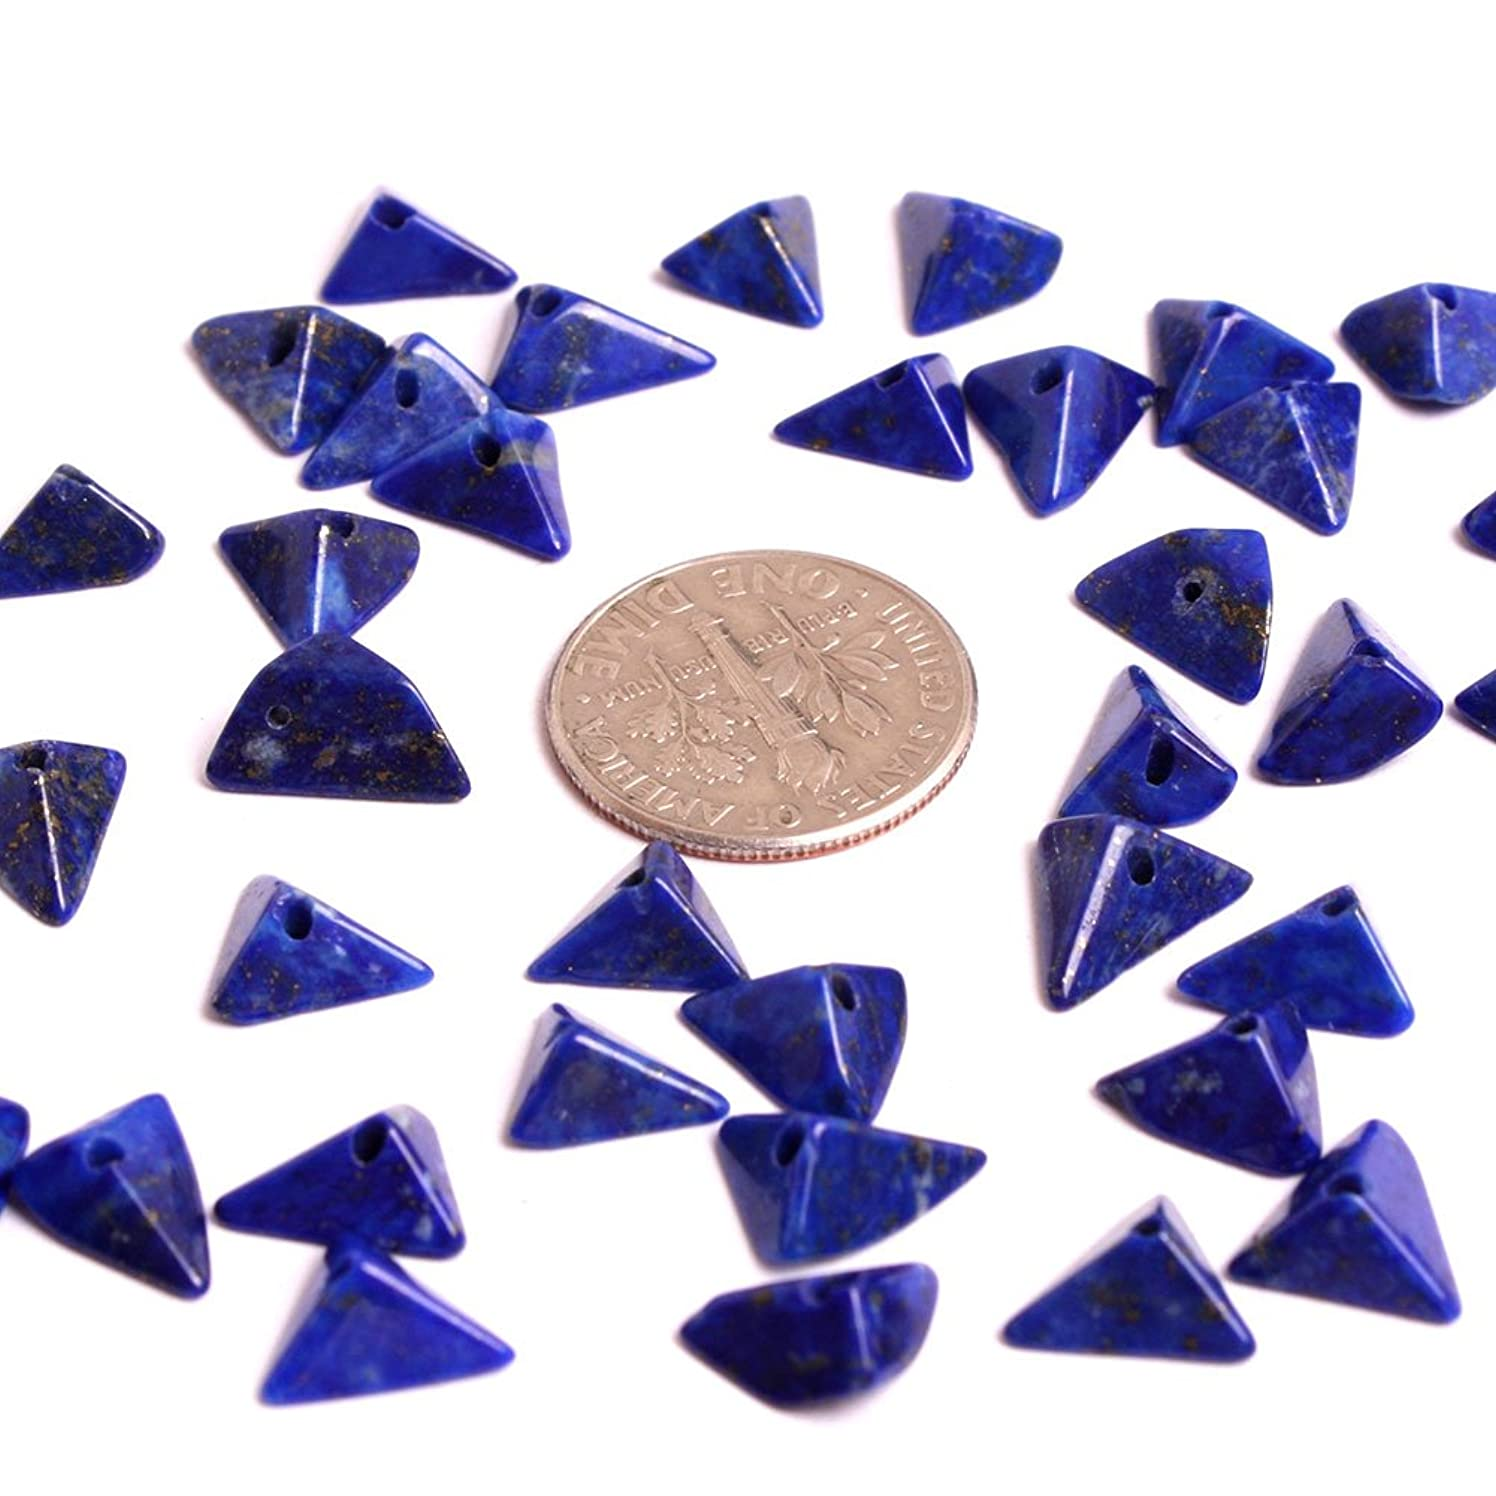 GEM-inside Natural Blue 4X8MM Lapis Lazuli Gemstone Triangle Crystal Energy Stone 38Pcs Loose Beads for Jewelry Making Jewelry Beading Supplies for Women